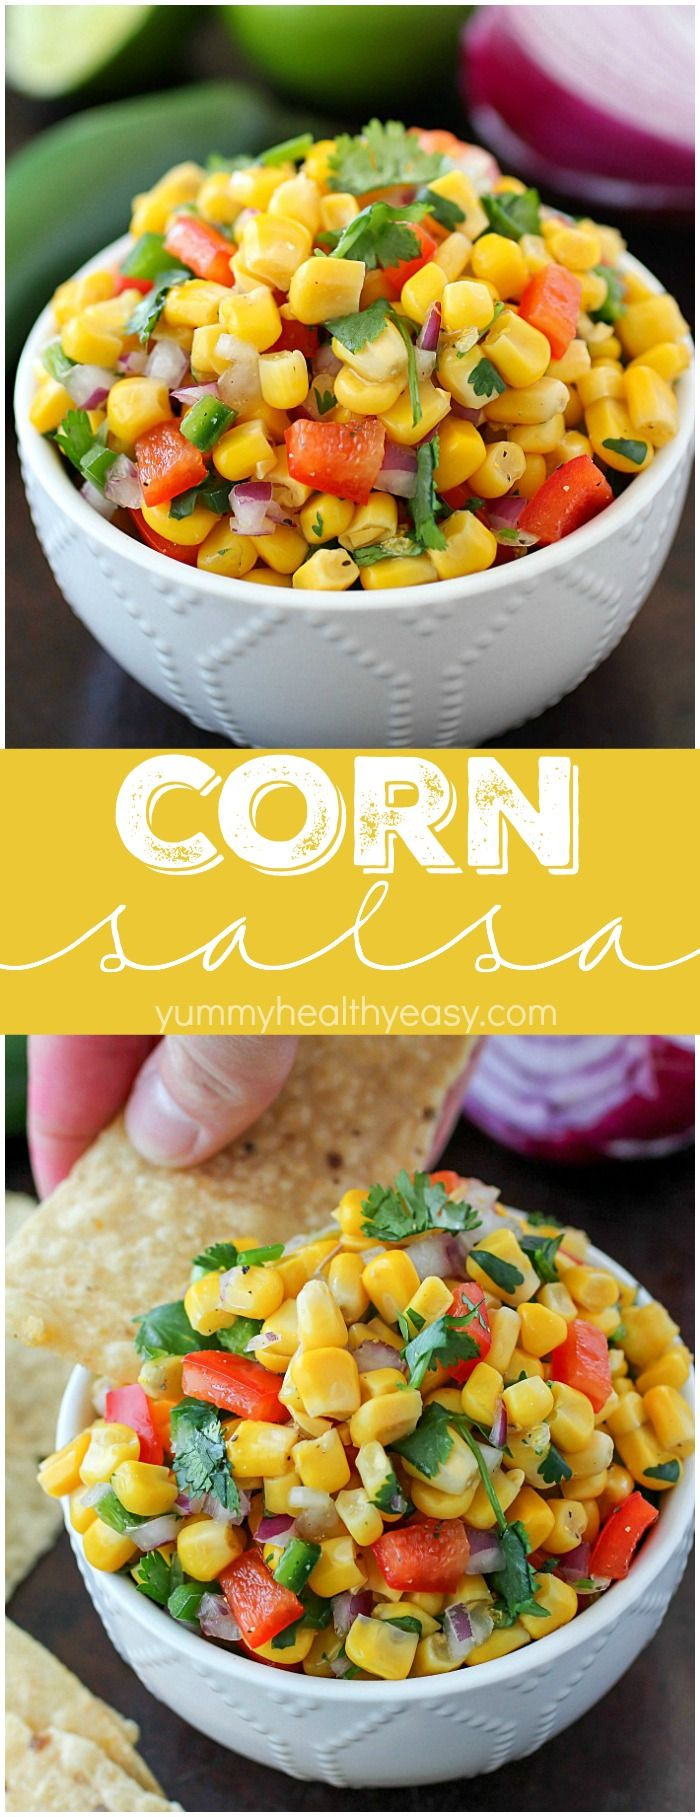 Corn Salsa recipe that's super easy to make and delicious! Using canned corn and other ingredients you probably already have on hand, this is the quickest salsa recipe & one of the most flavorful! Plus all about my Iowa Corn Quest trip! AD